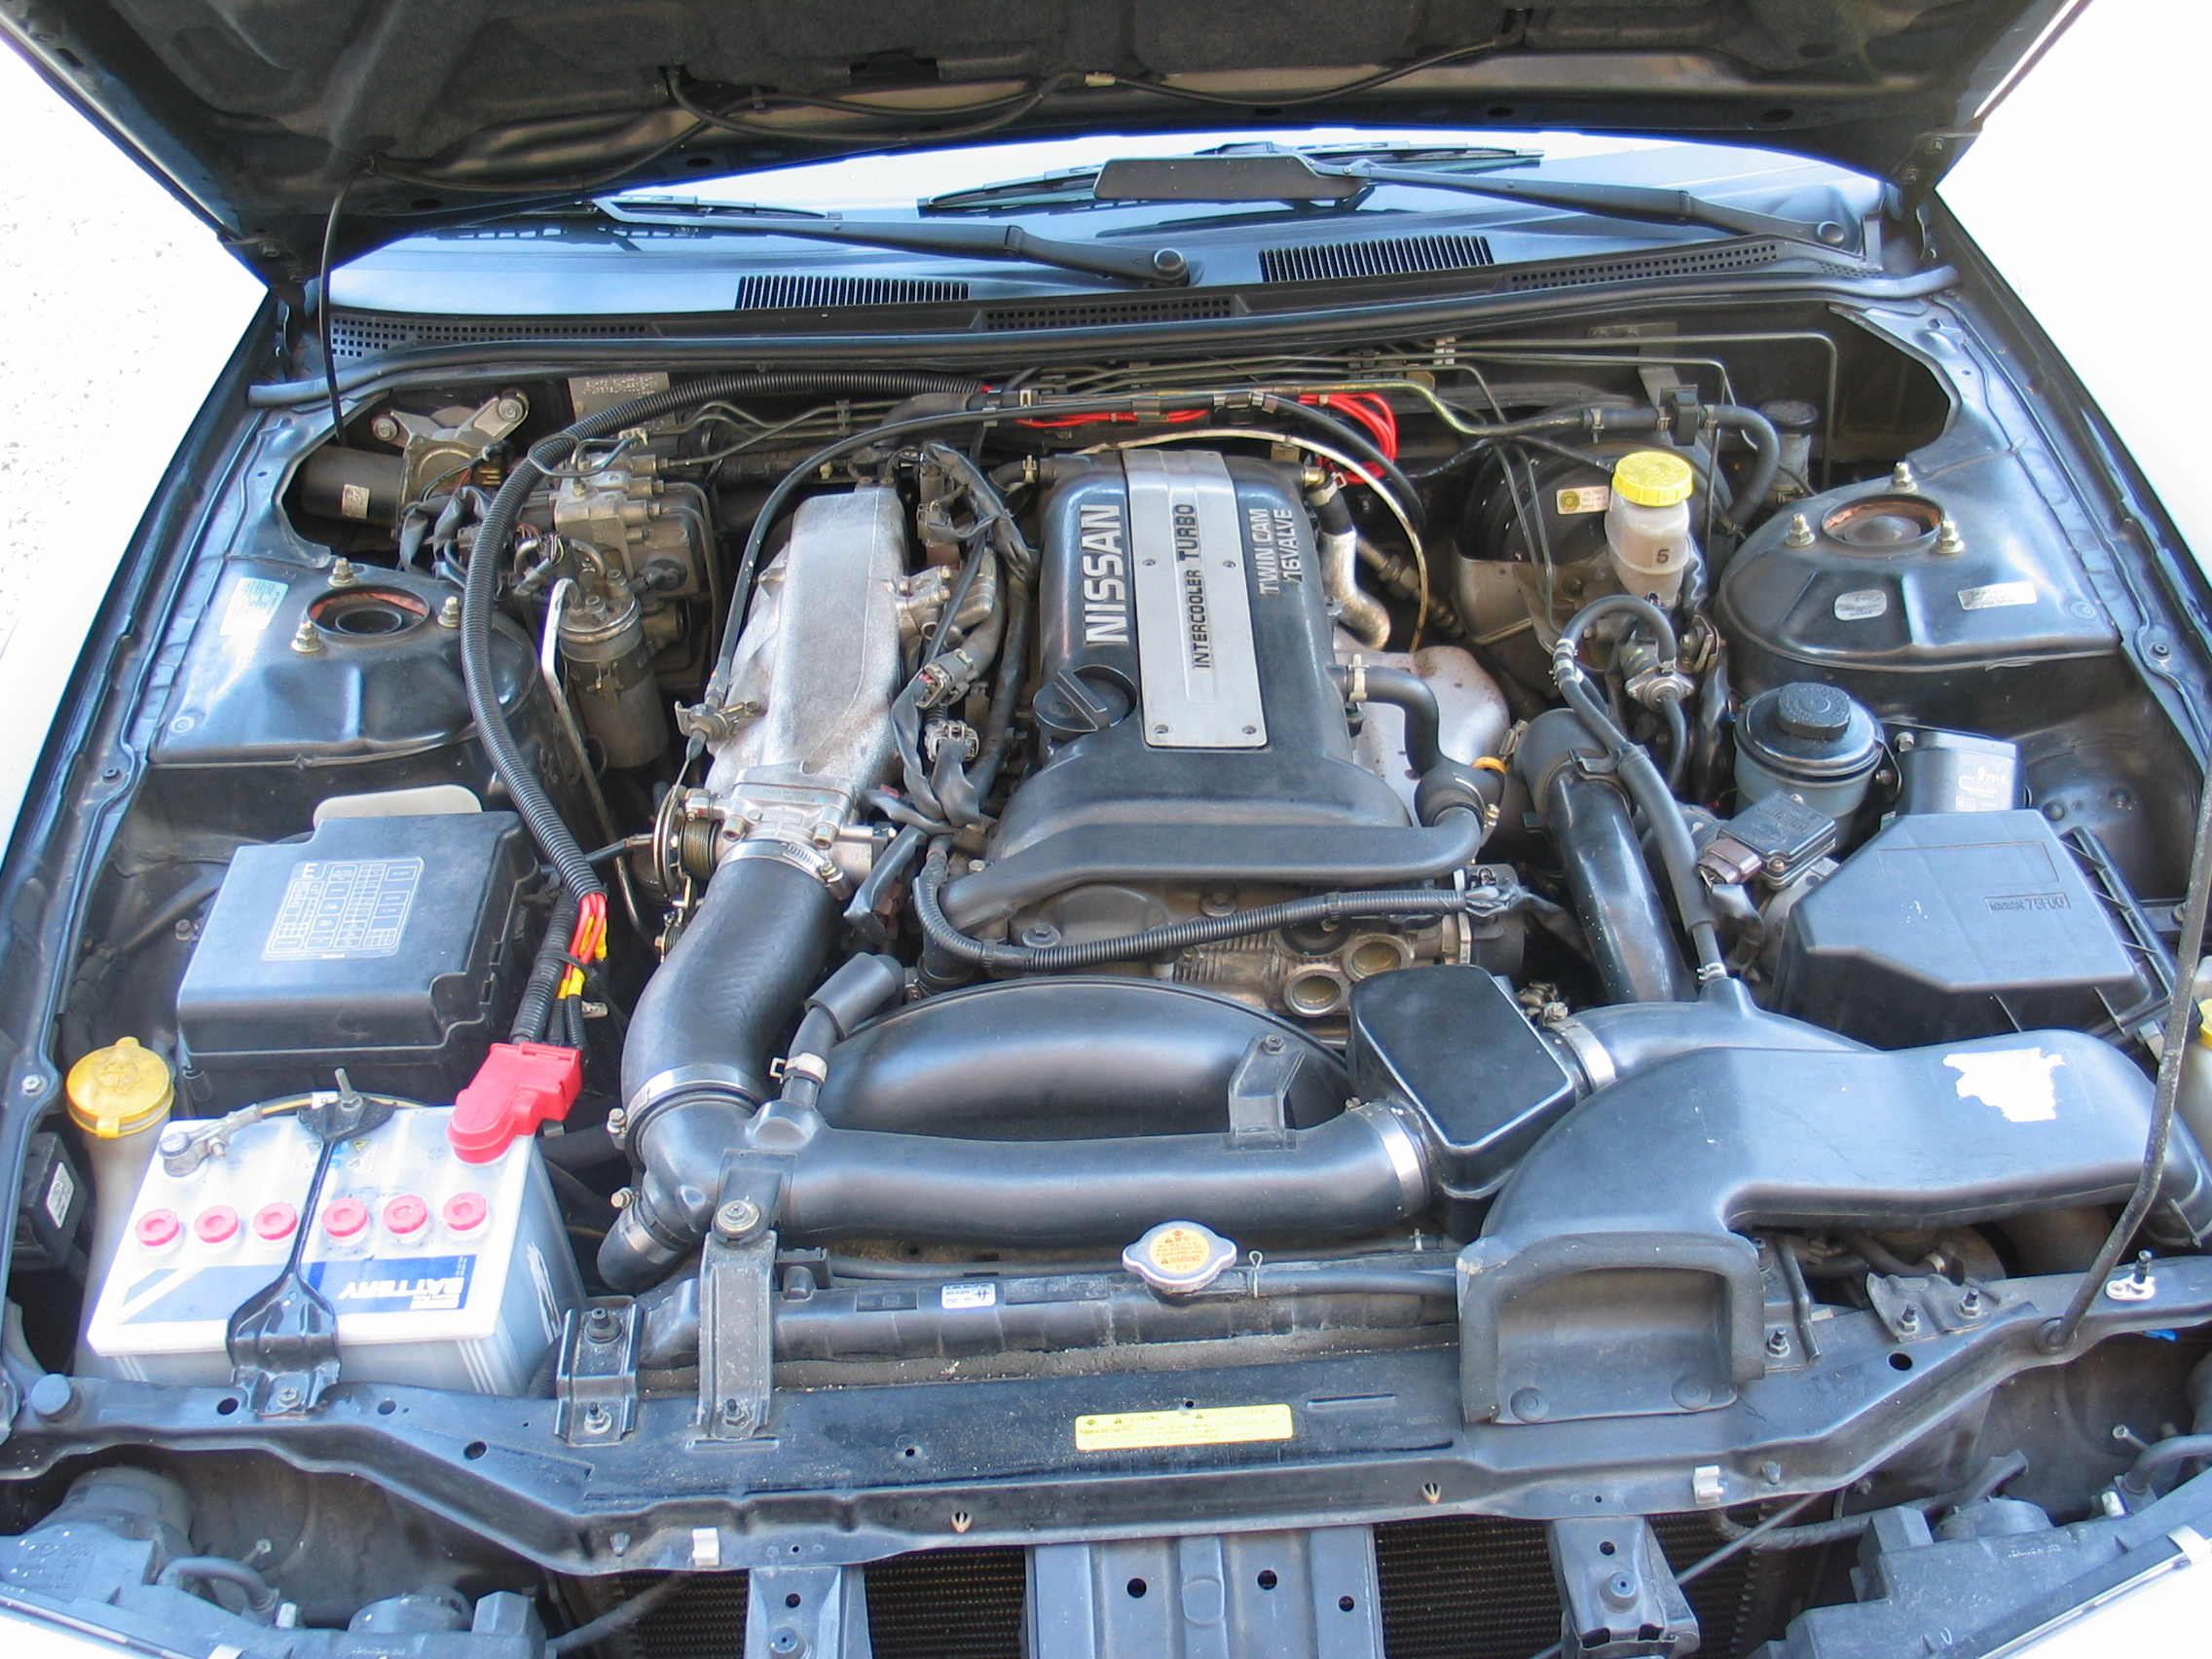 file nissan 200sx s14a engine bay stock jpg wikimedia commons rb20det s13 engine bay file nissan 200sx s14a engine bay stock jpg